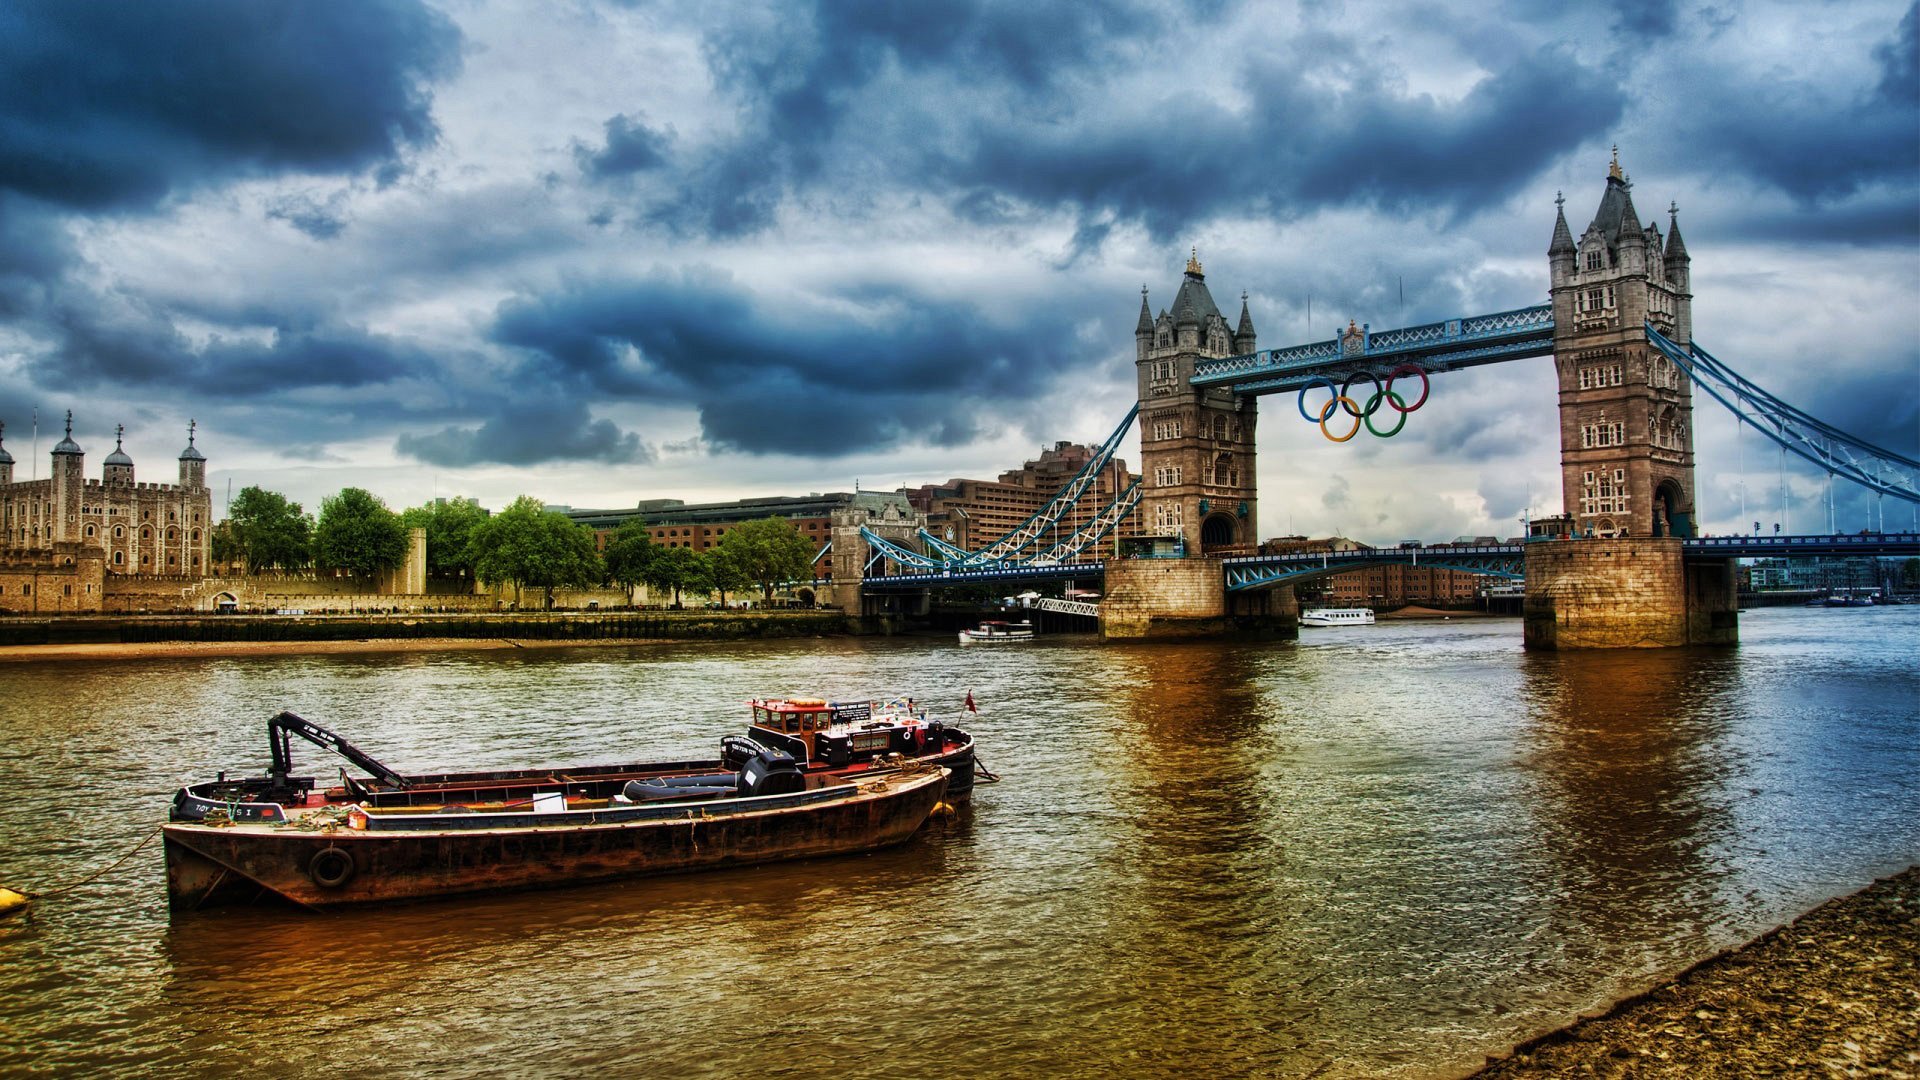 Tower of London, Tower Bridge, Shakespeare's Globe, Thames River Cruise, ohne London Pass, Hop on Hop off Bus Tour, Churchill War Rooms, London Bridge Experience, HMS Belfast, Westminster Abbey, Kensington Palace, London Zoo,